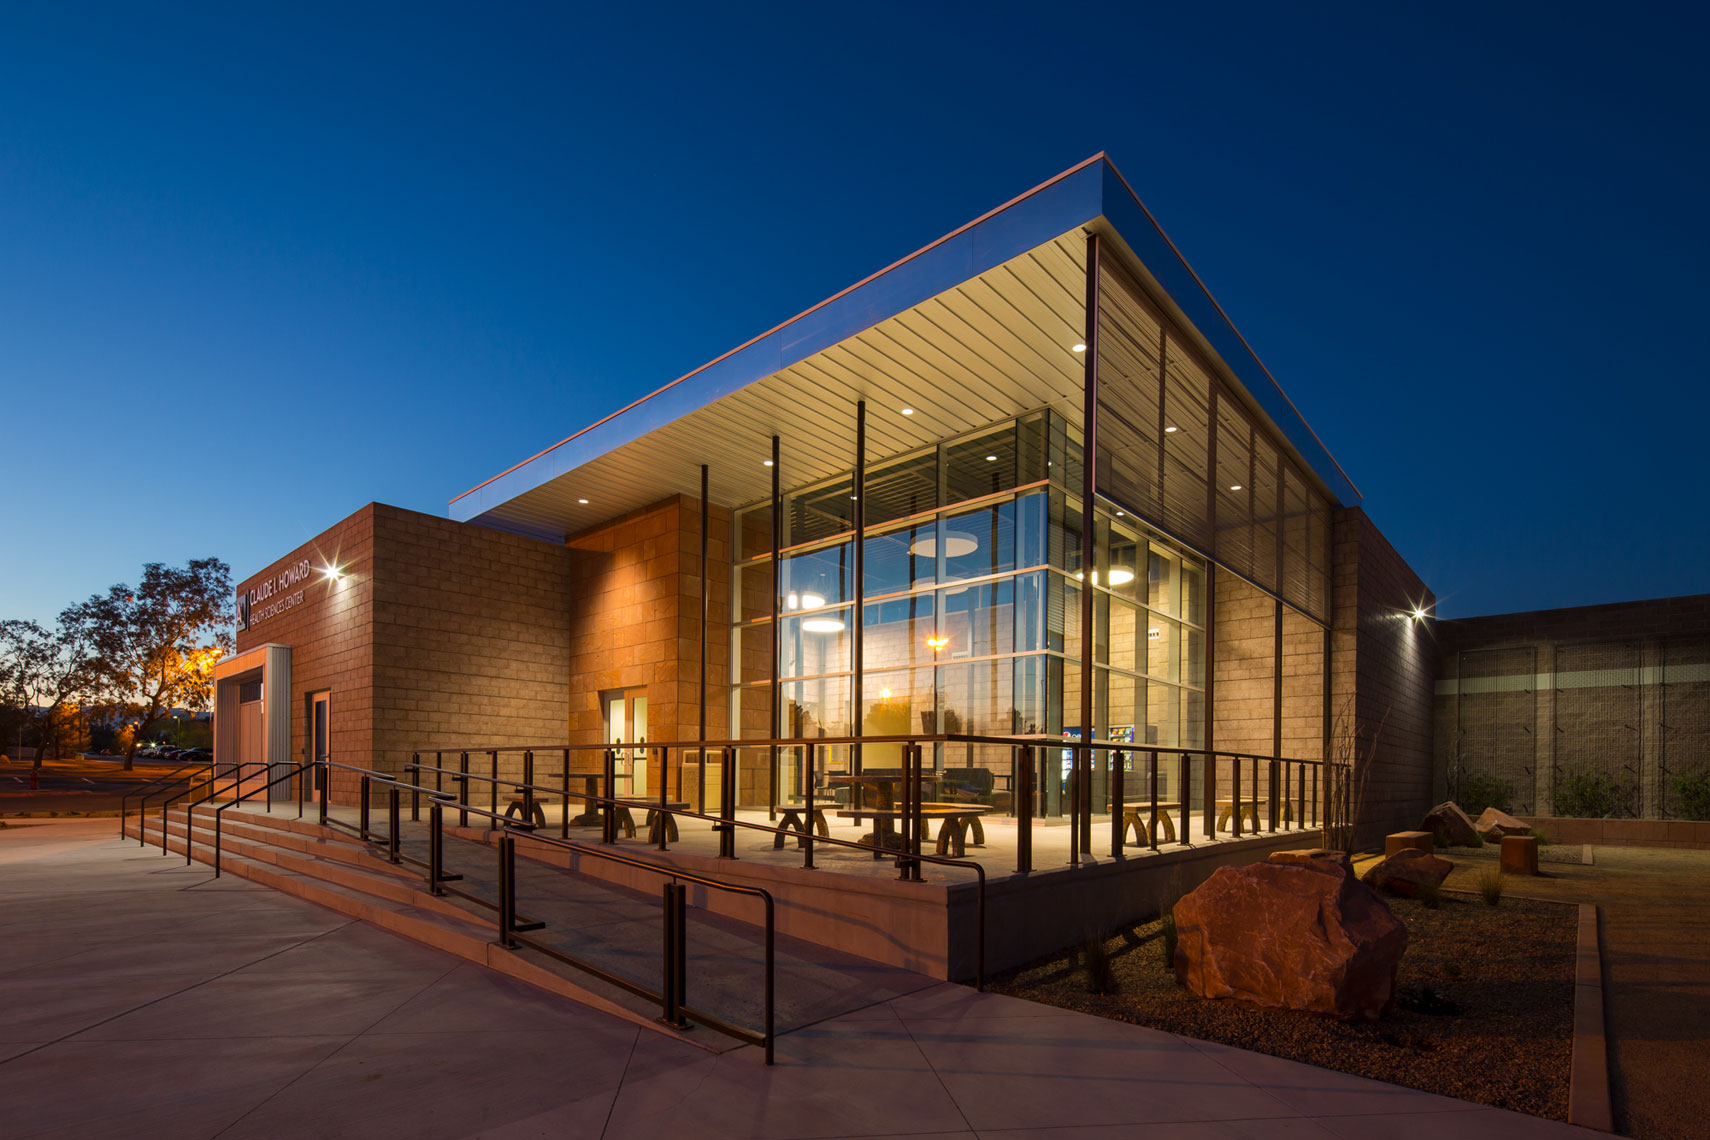 jeff-green-ccsd-campus-building-las-vegas-exterior-architecture